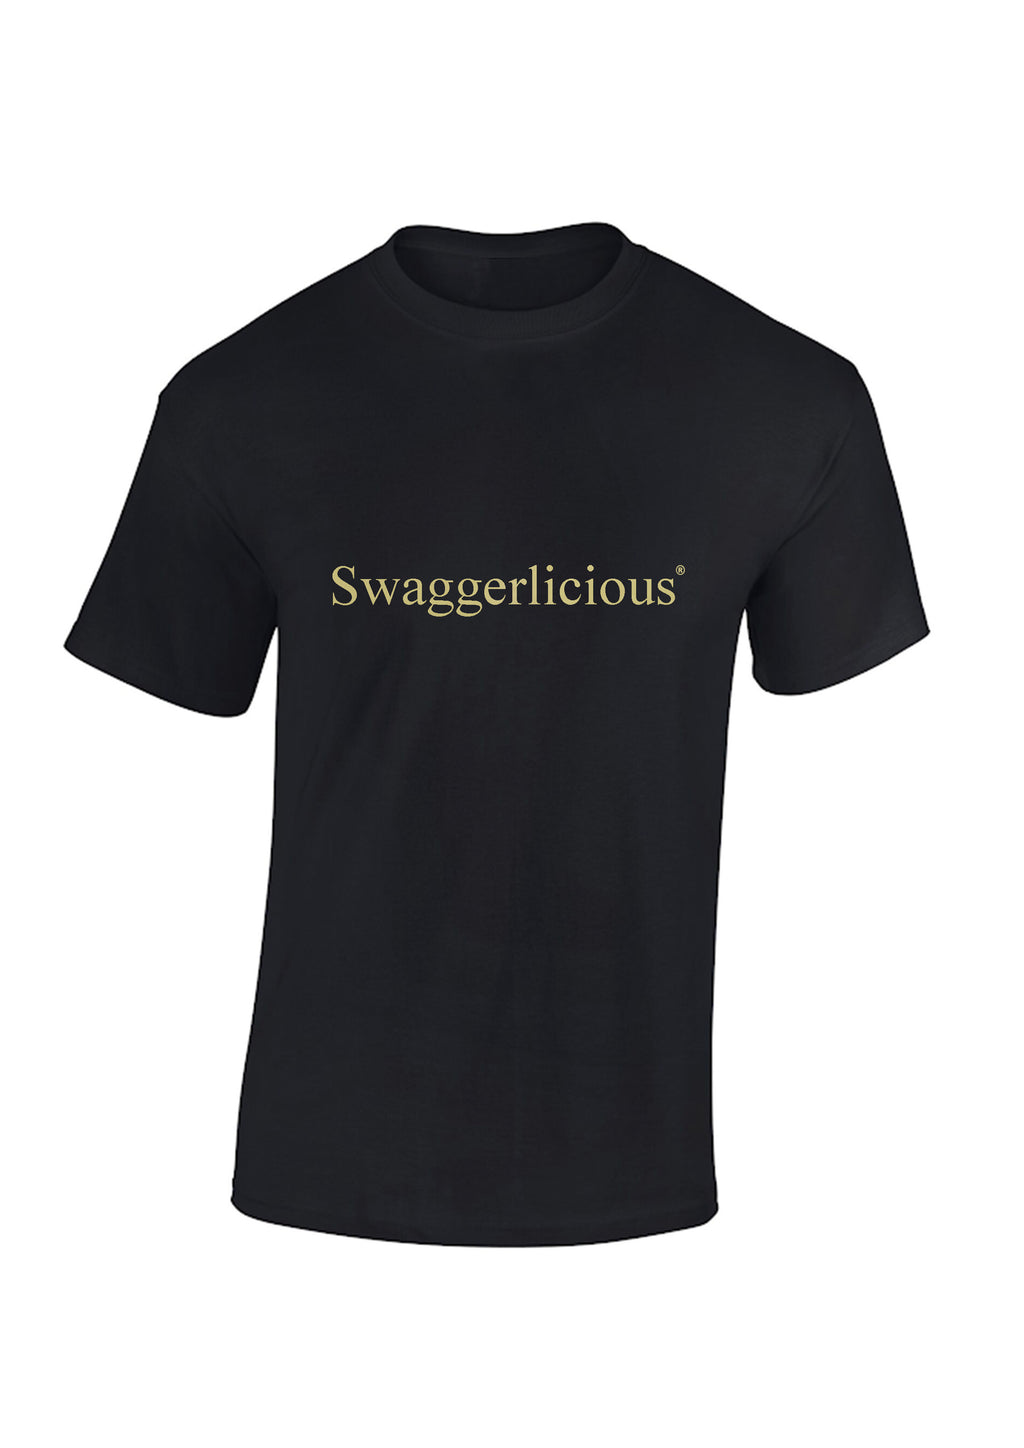 Swaggerlicious Smart Tee With Metallic Gold Logo